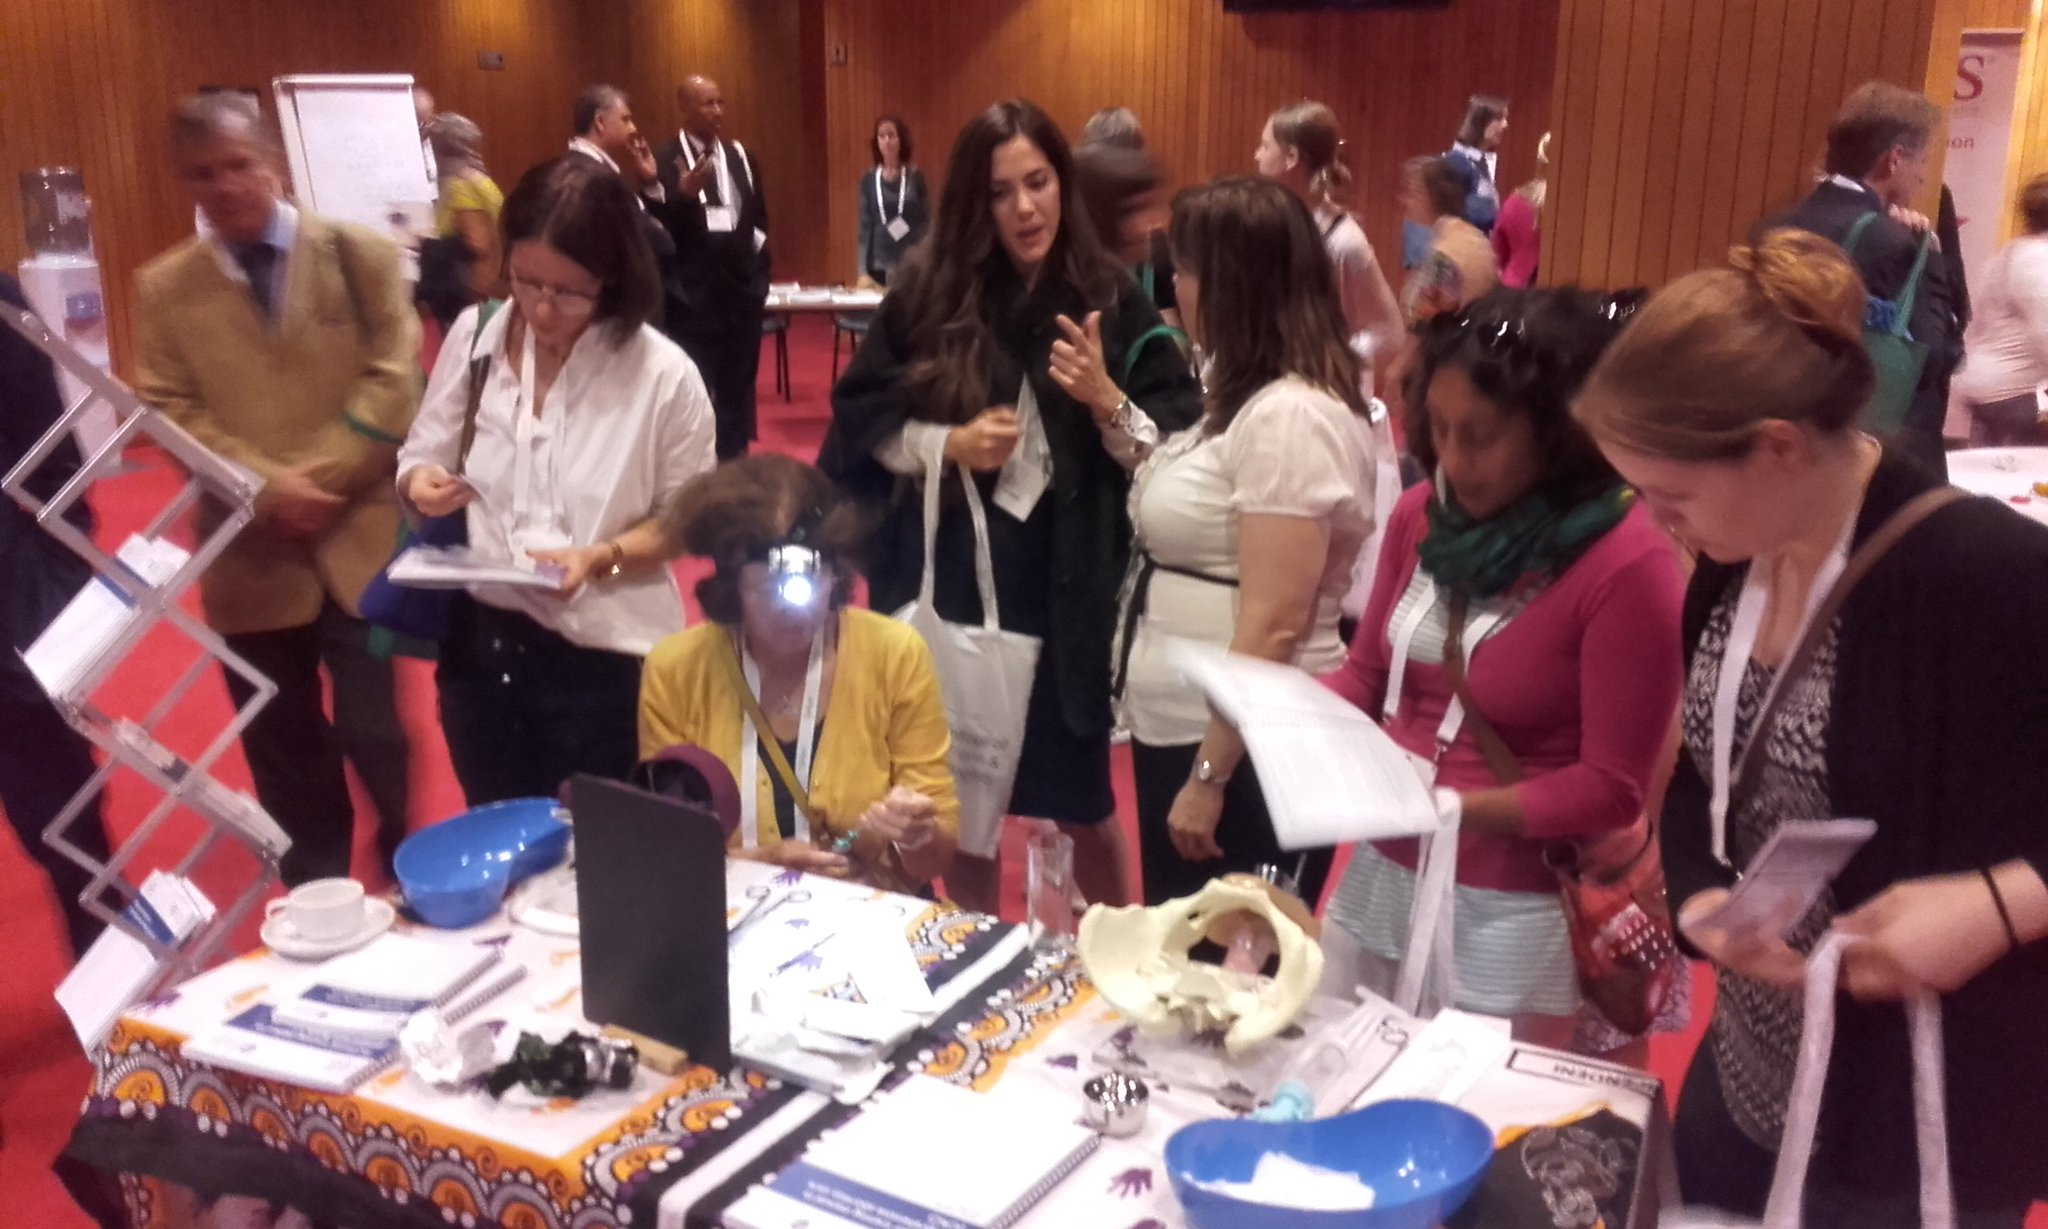 LeadingSafeChoices stand busy busy busy @RCObsGyn #FIAPAC2016 #abortionsaveslives #abortion #familyplanning #wetrustwomen https://t.co/PvBqMFu4xK